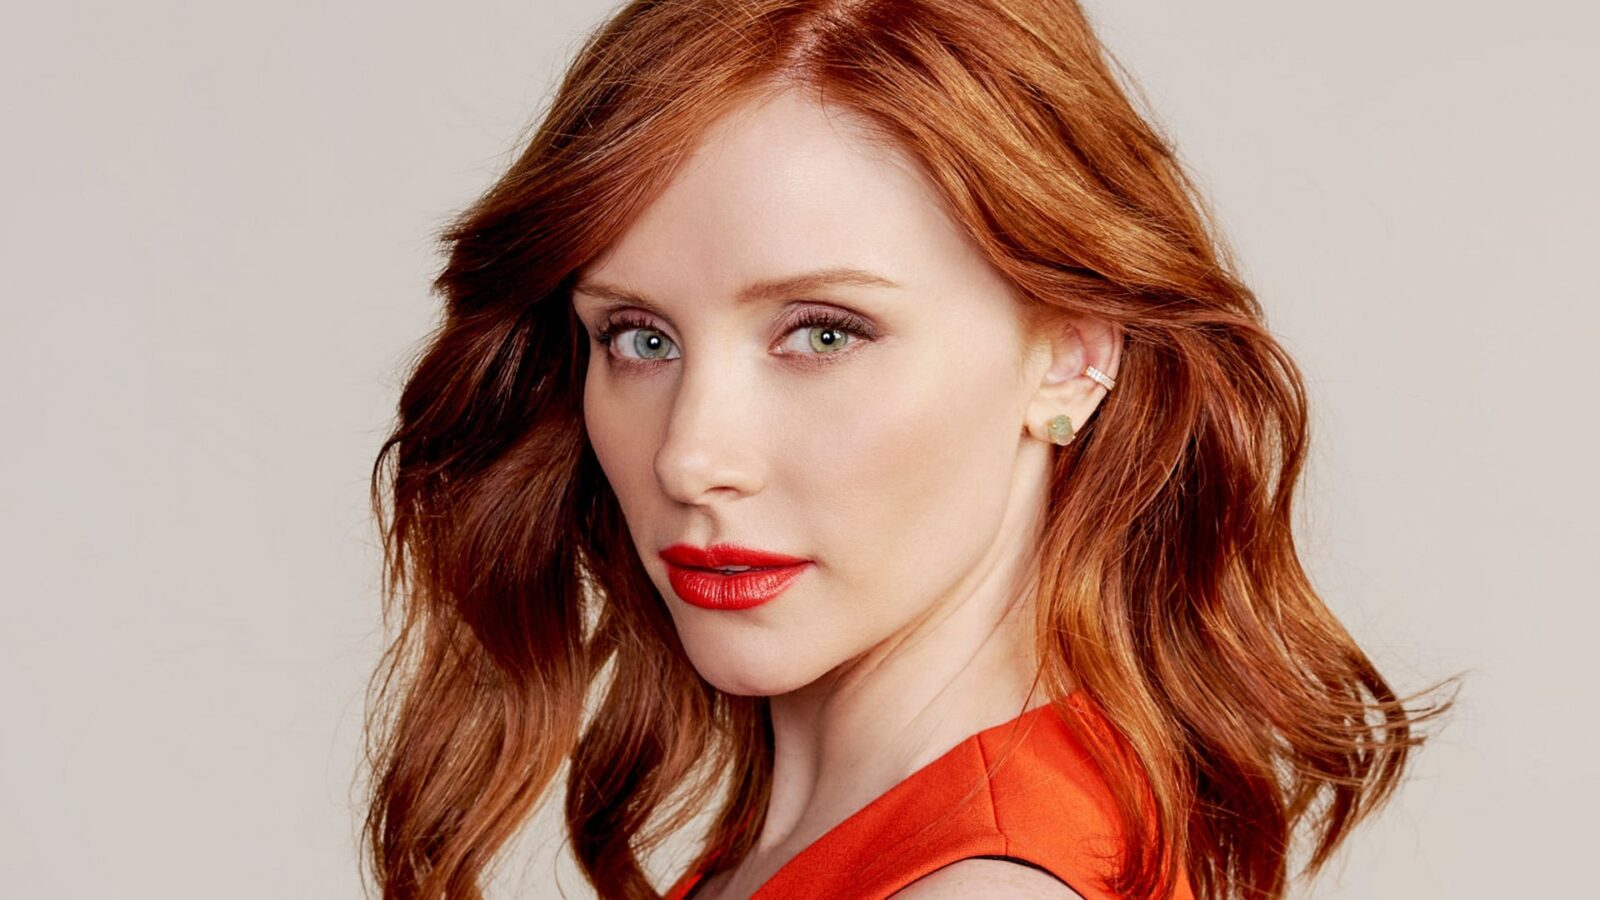 Anime World Wallpaper 24 Bryce Dallas Howard Wallpapers Hd Download